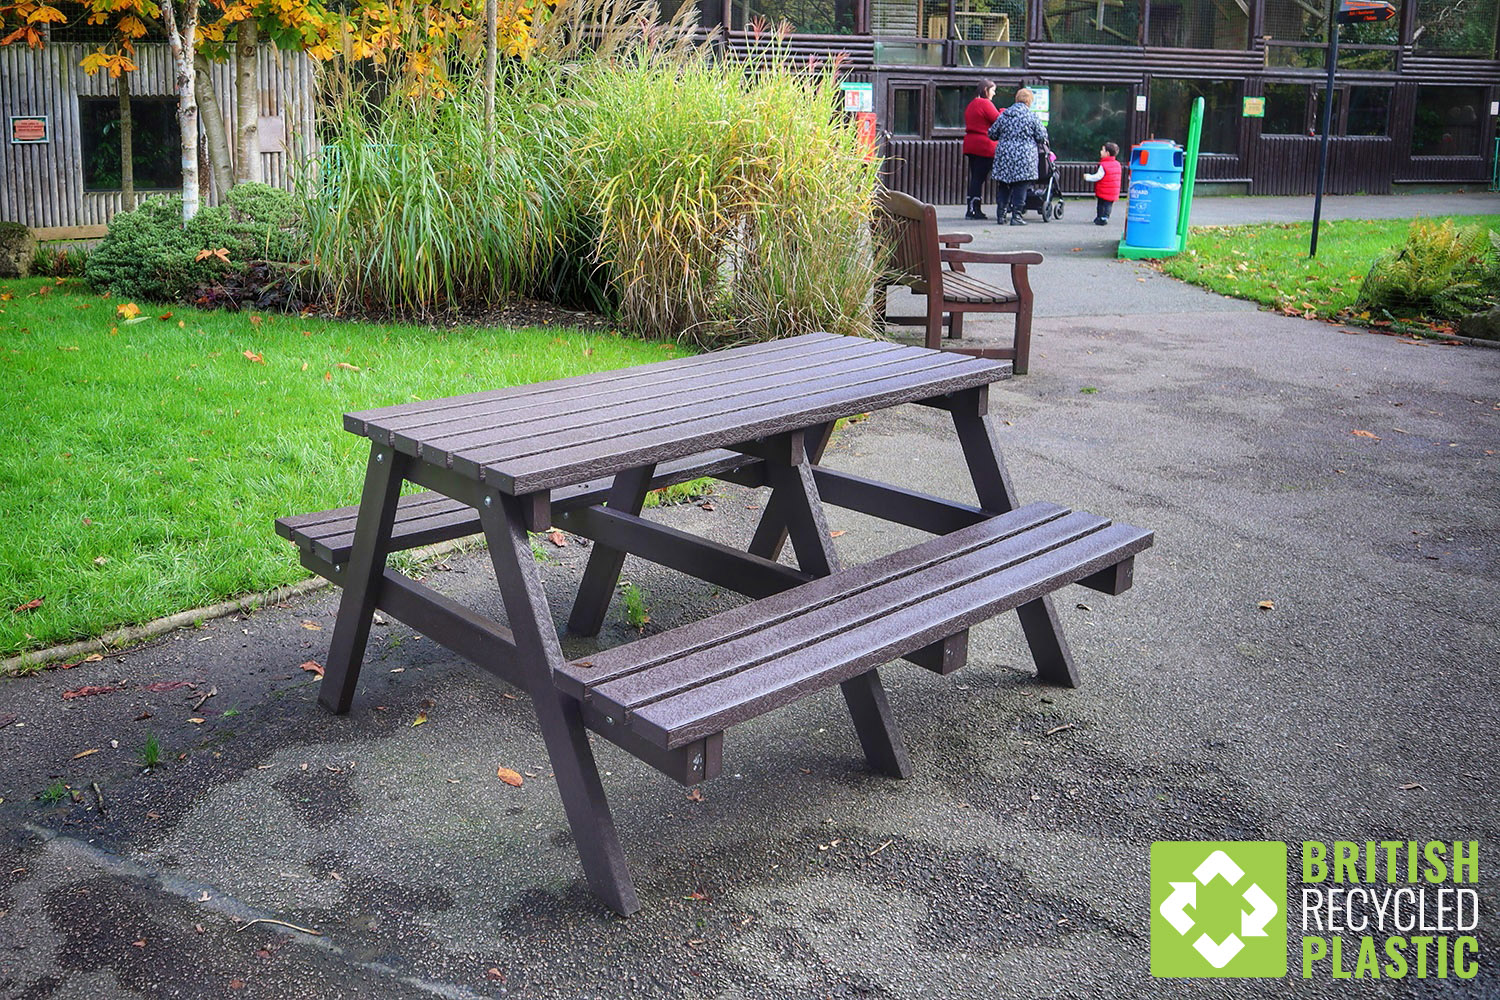 Recycled plastic picnic tables at Paradise Wildlife Park in Hertfordshire